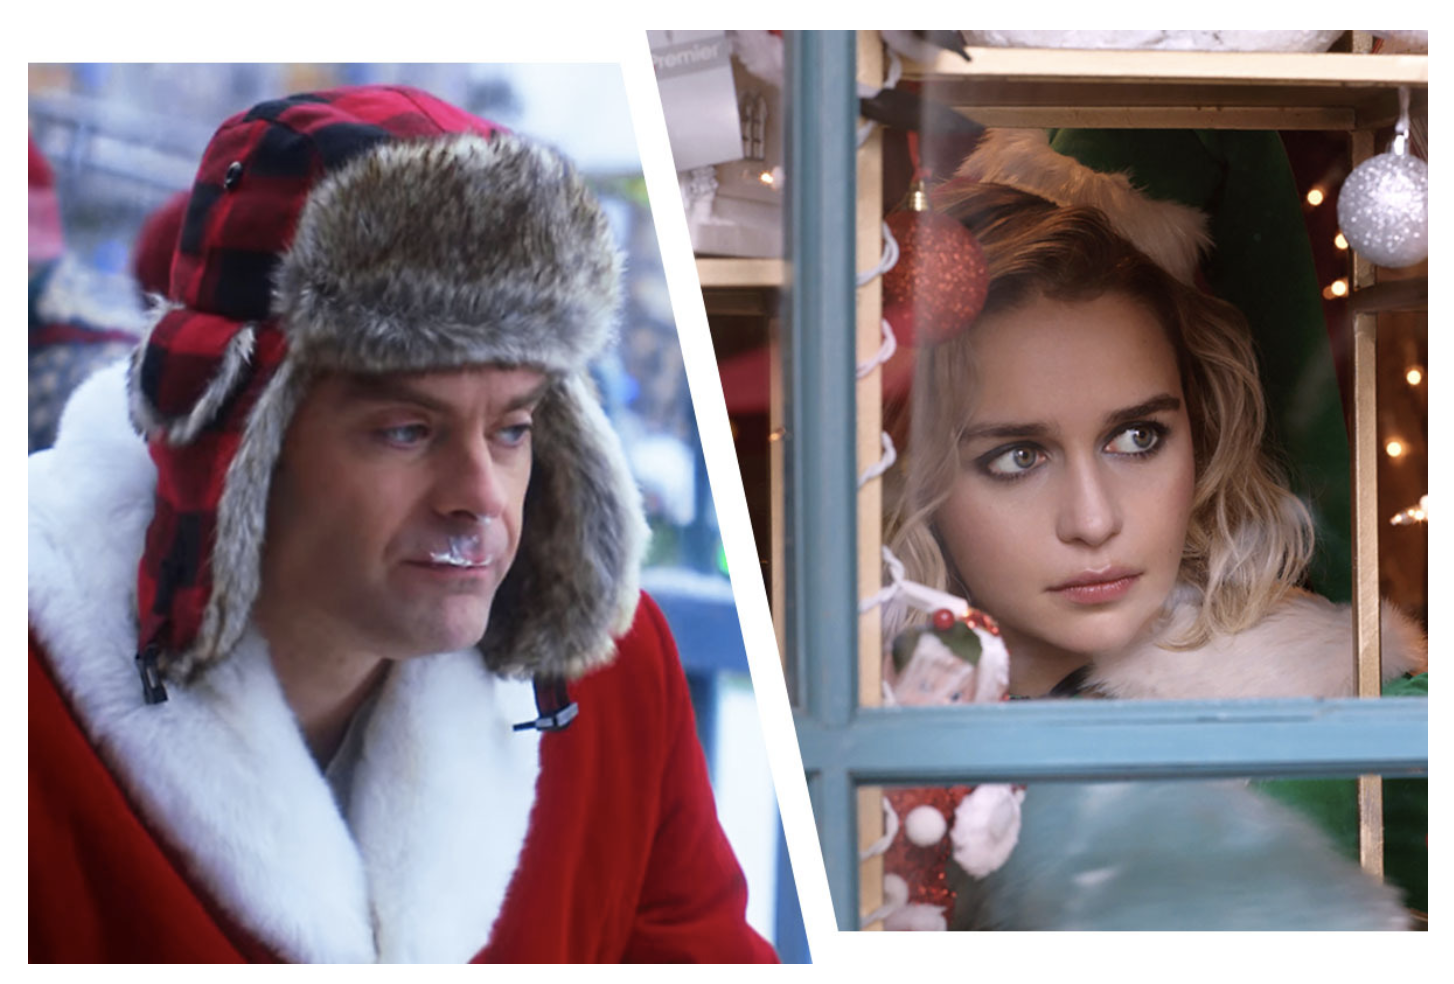 The Definitive Guide To 2019's Deluge Of New Christmas Movies